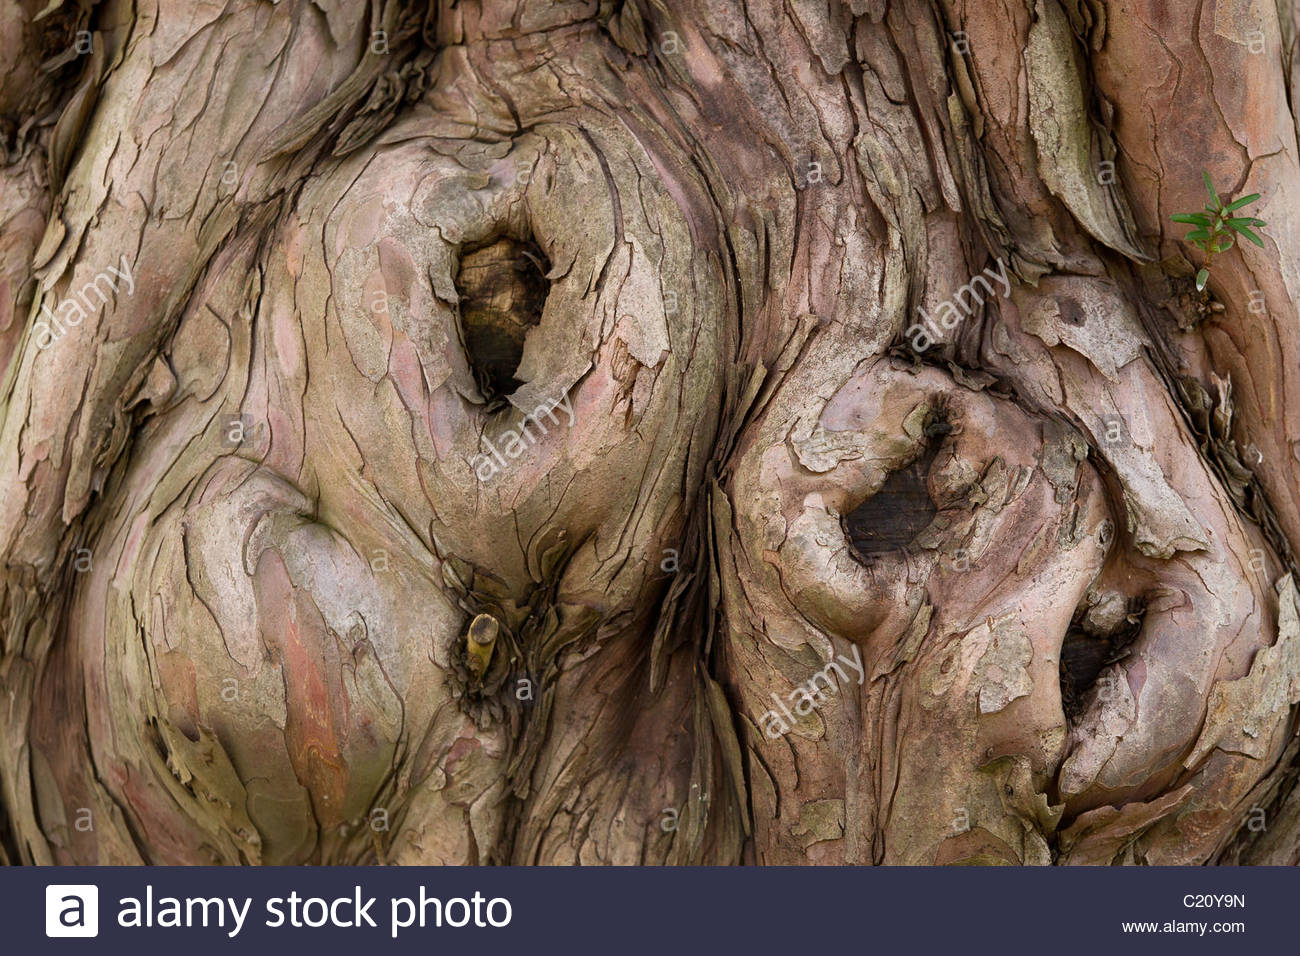 Large yew - Taxus baccata - Stock Image